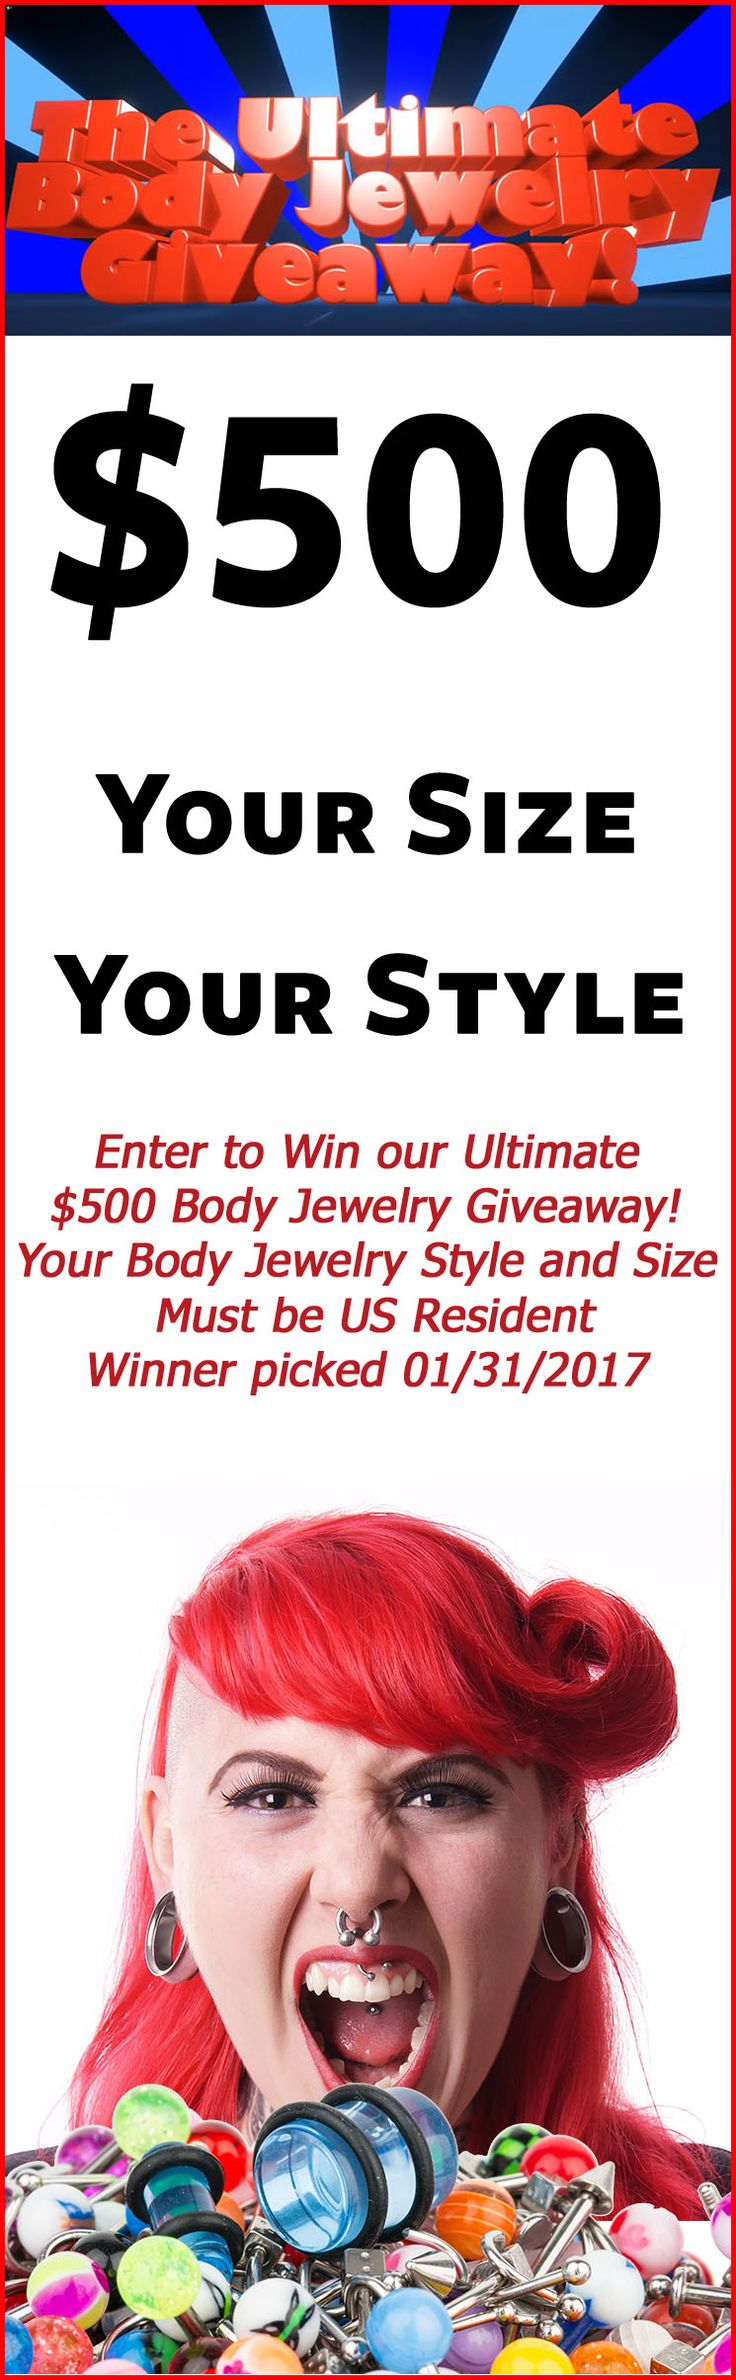 Enter to Win our Ultimate $500 Body Jewelry Giveaway! Your Body Jewelry Style and Your Size. Must be US Resident, winner picked 01/31/2017 read full Contest Rules for Details. Enter at Link Below:  https://wickedbodyjewelz.com/pages/contest